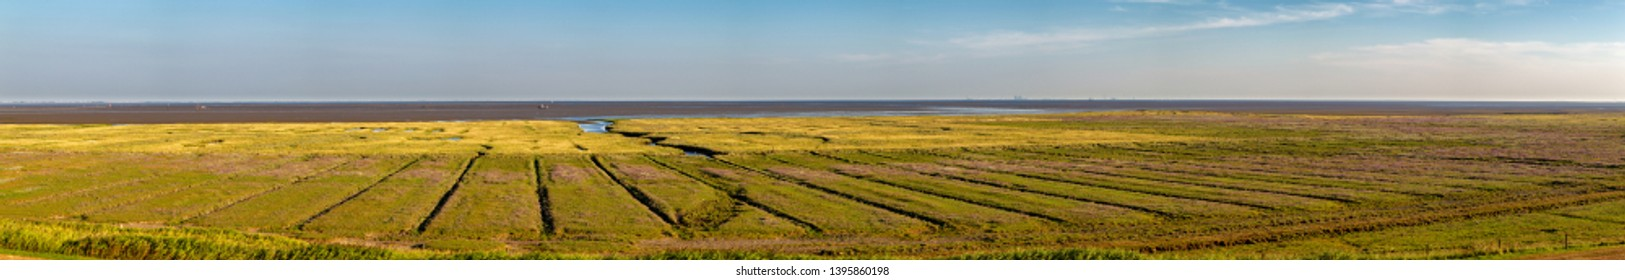 Panorama of the salt marshes on the East Frisian Island Juist in the North Sea, Germany.